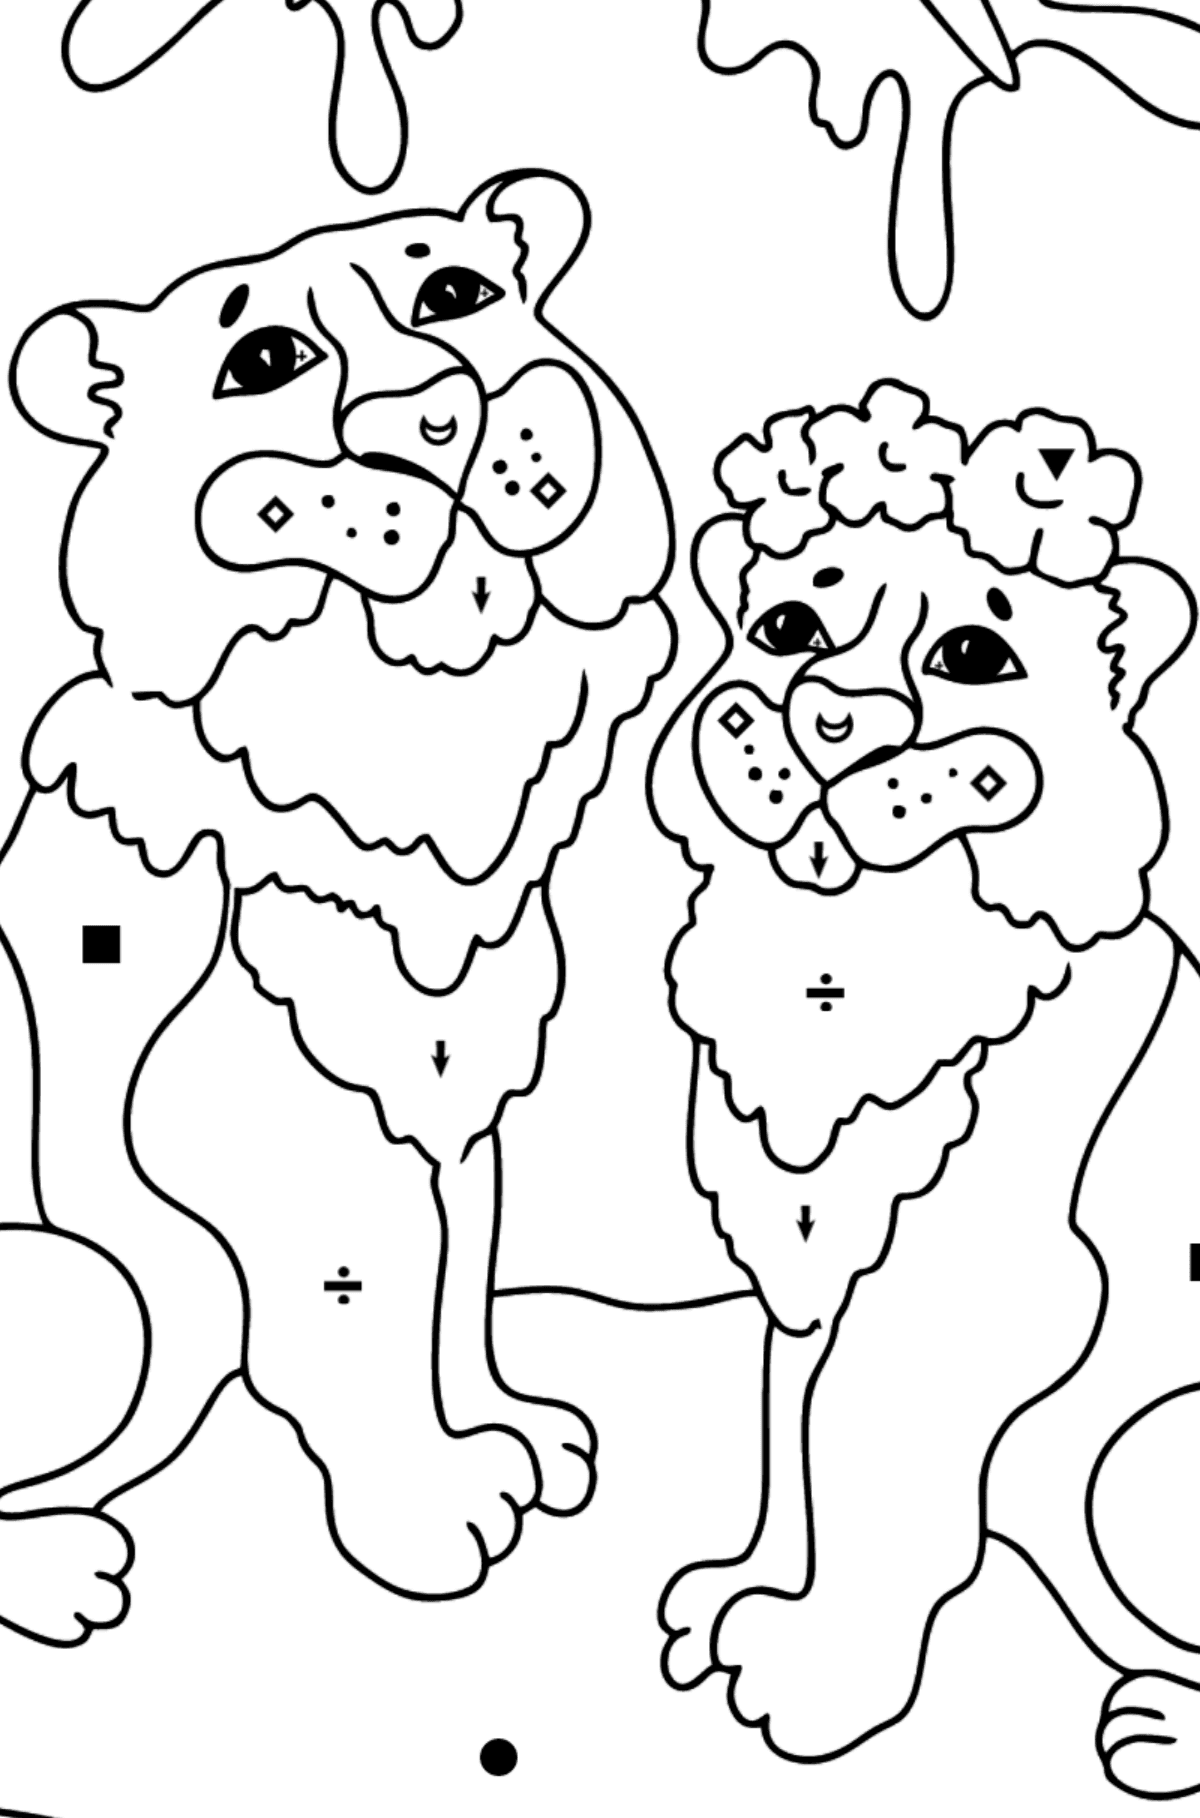 Coloring Page - Tigers with Butterflies - Coloring by Symbols for Kids